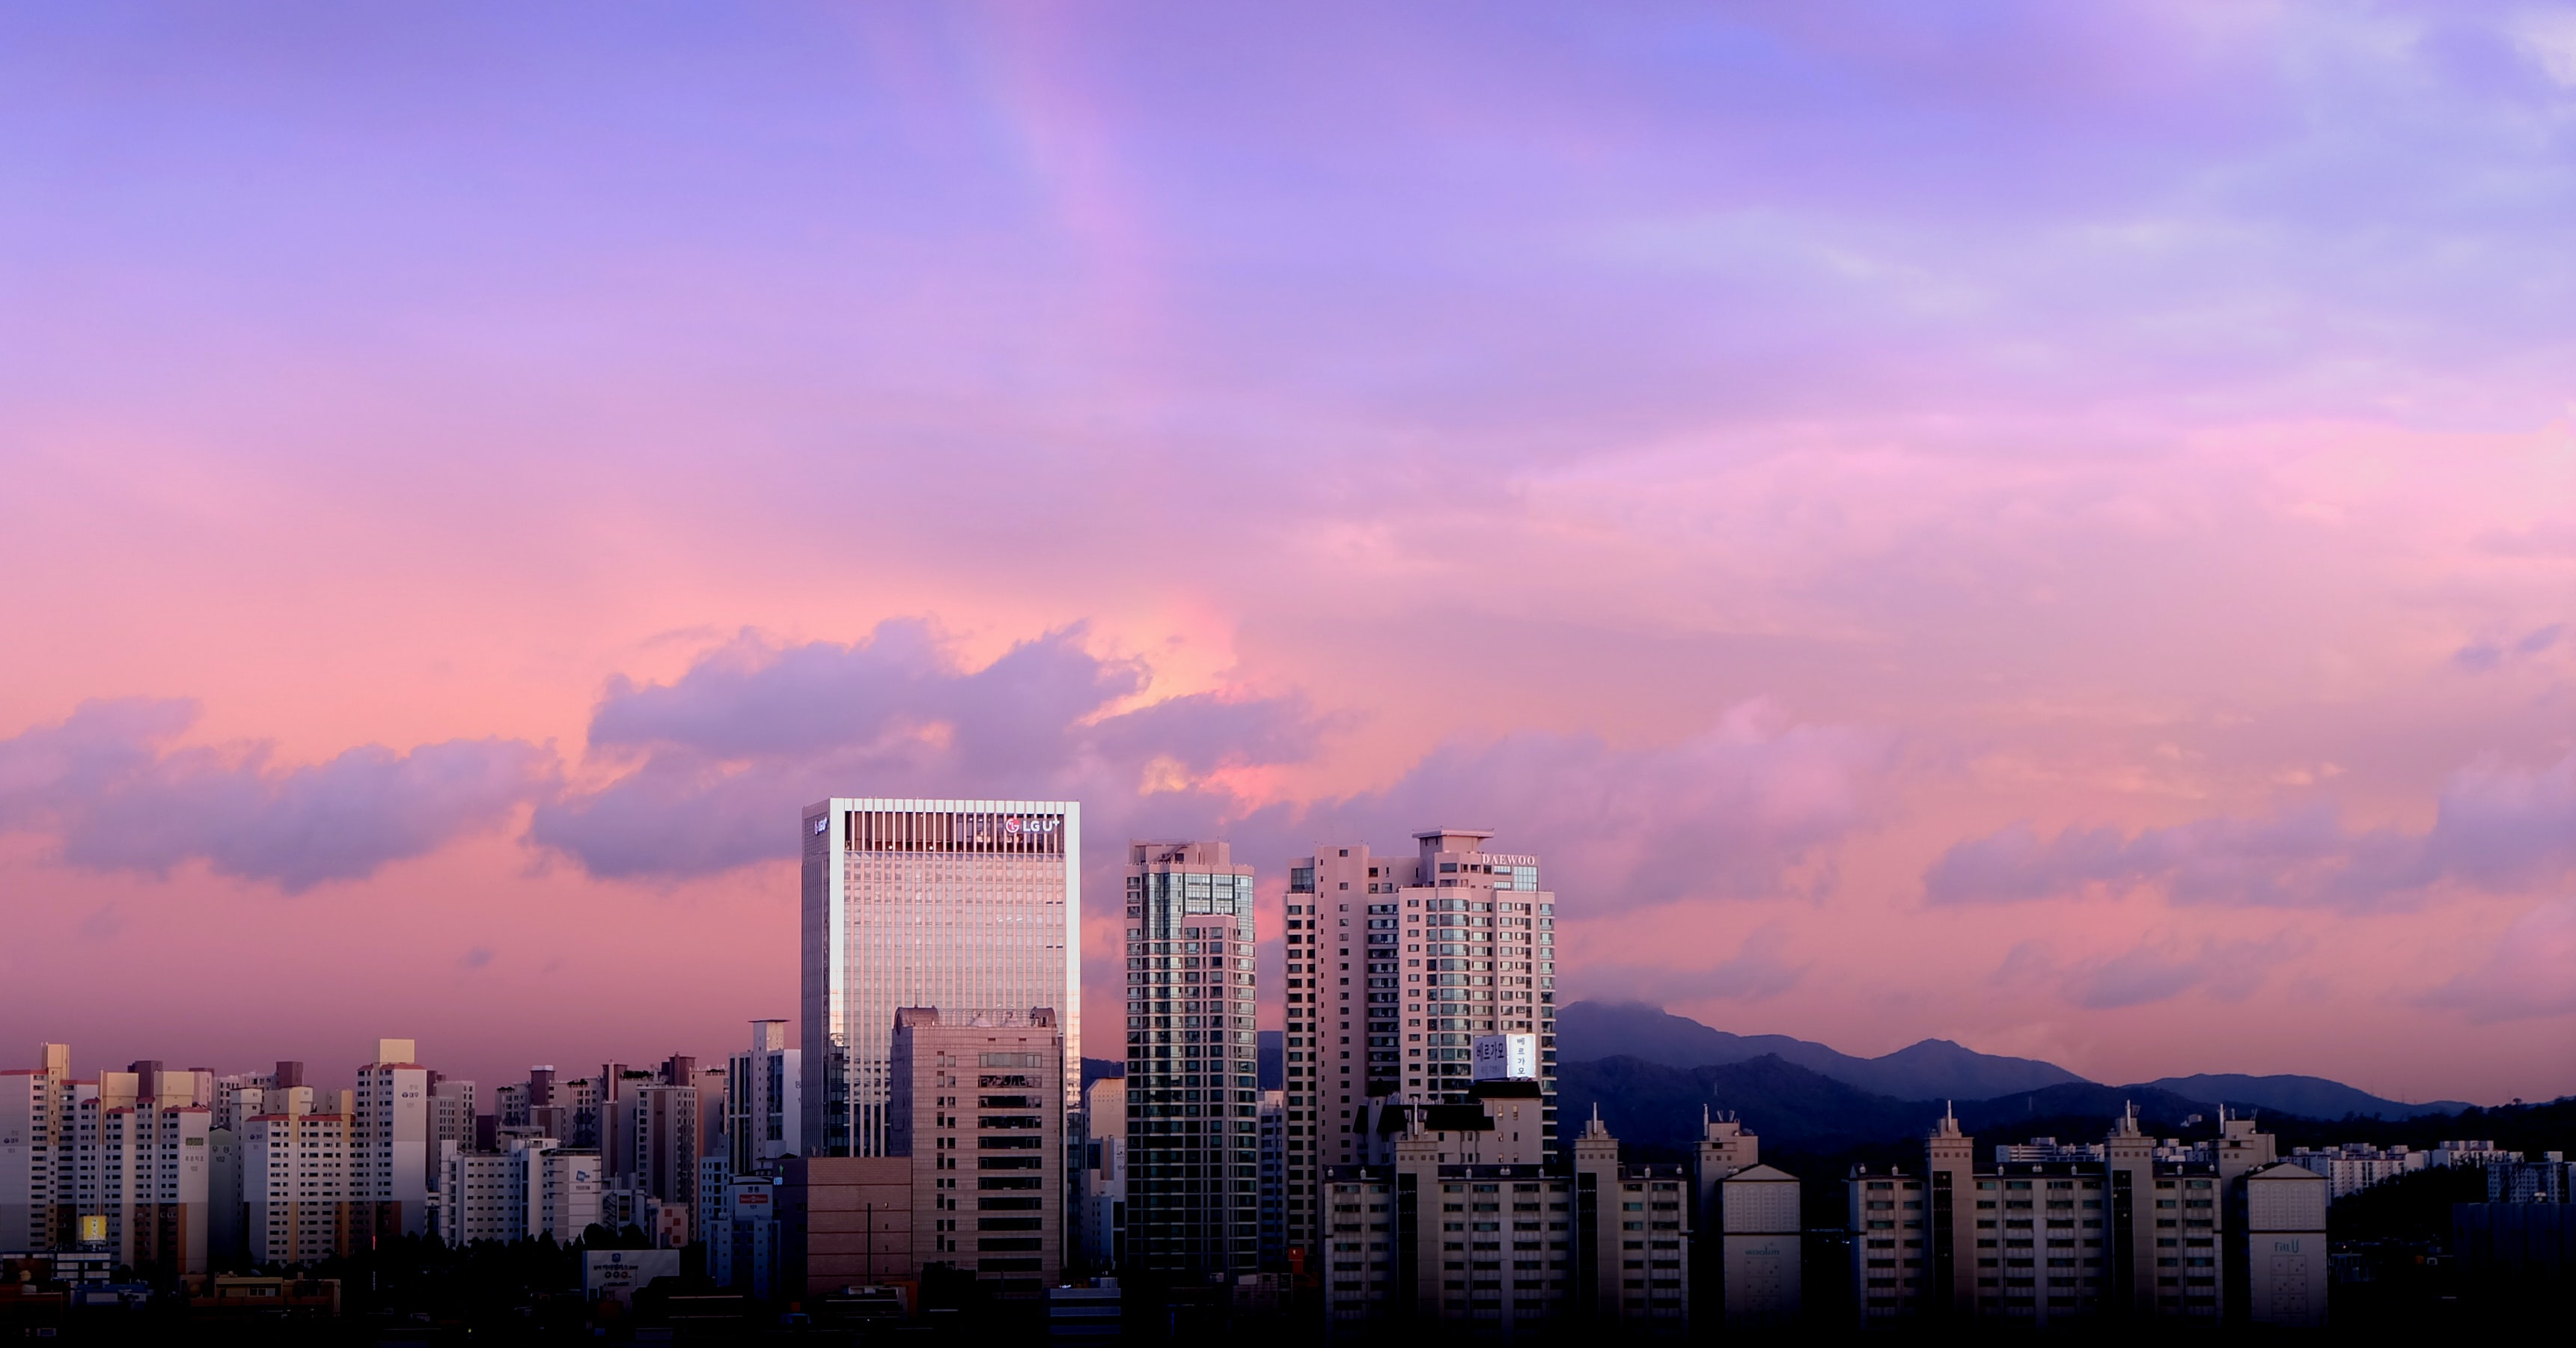 Pink and purple sunset over a metropolitan area